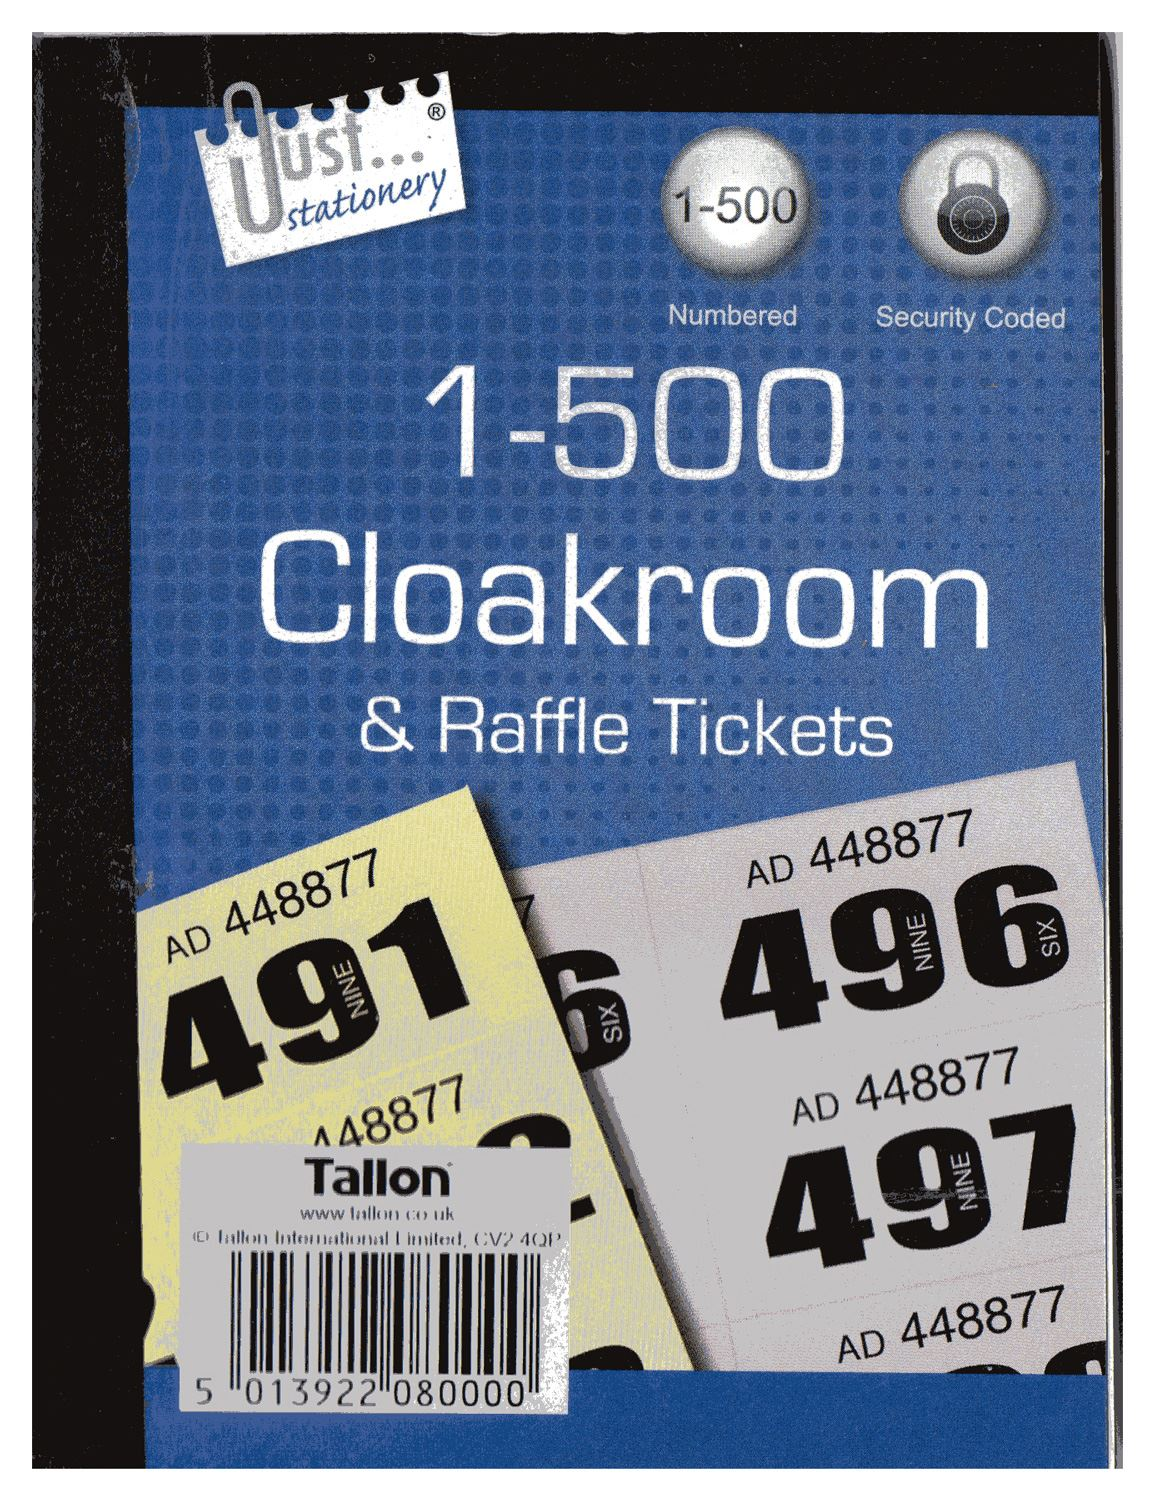 Book of 500 Raffle / Cloakroom Tickets